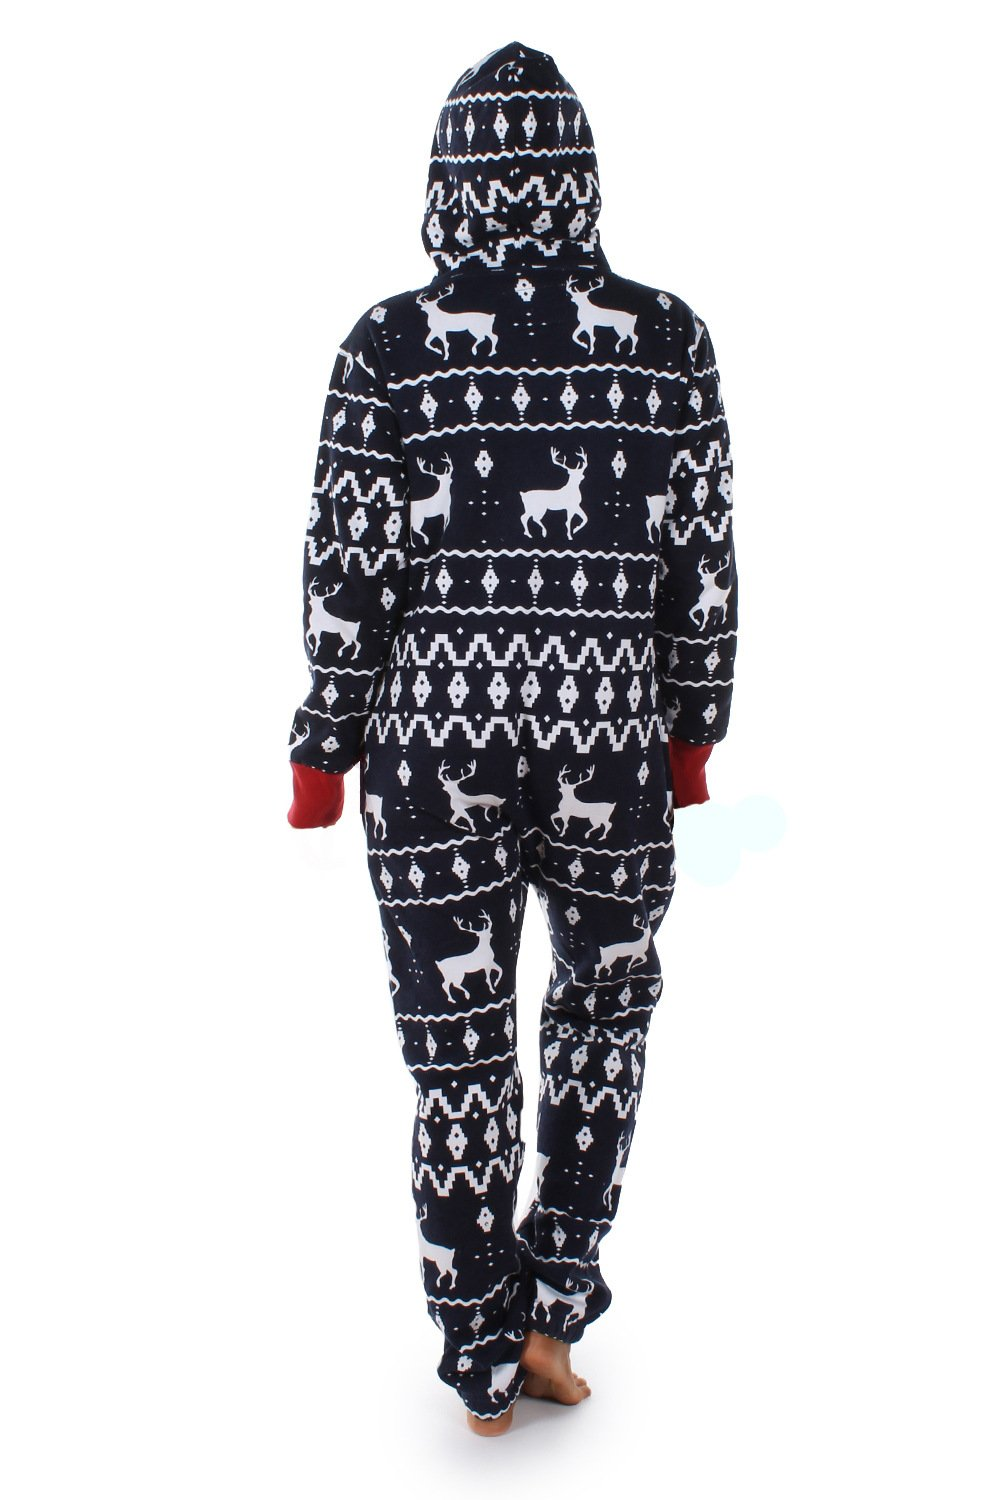 976ad07cab Amazon.com   GYH Winter Men s Plus Size Home Pajamas One Piece Adult Onesie  Mens Women Superman Jumpsuit Sleepwear   Sports   Outdoors